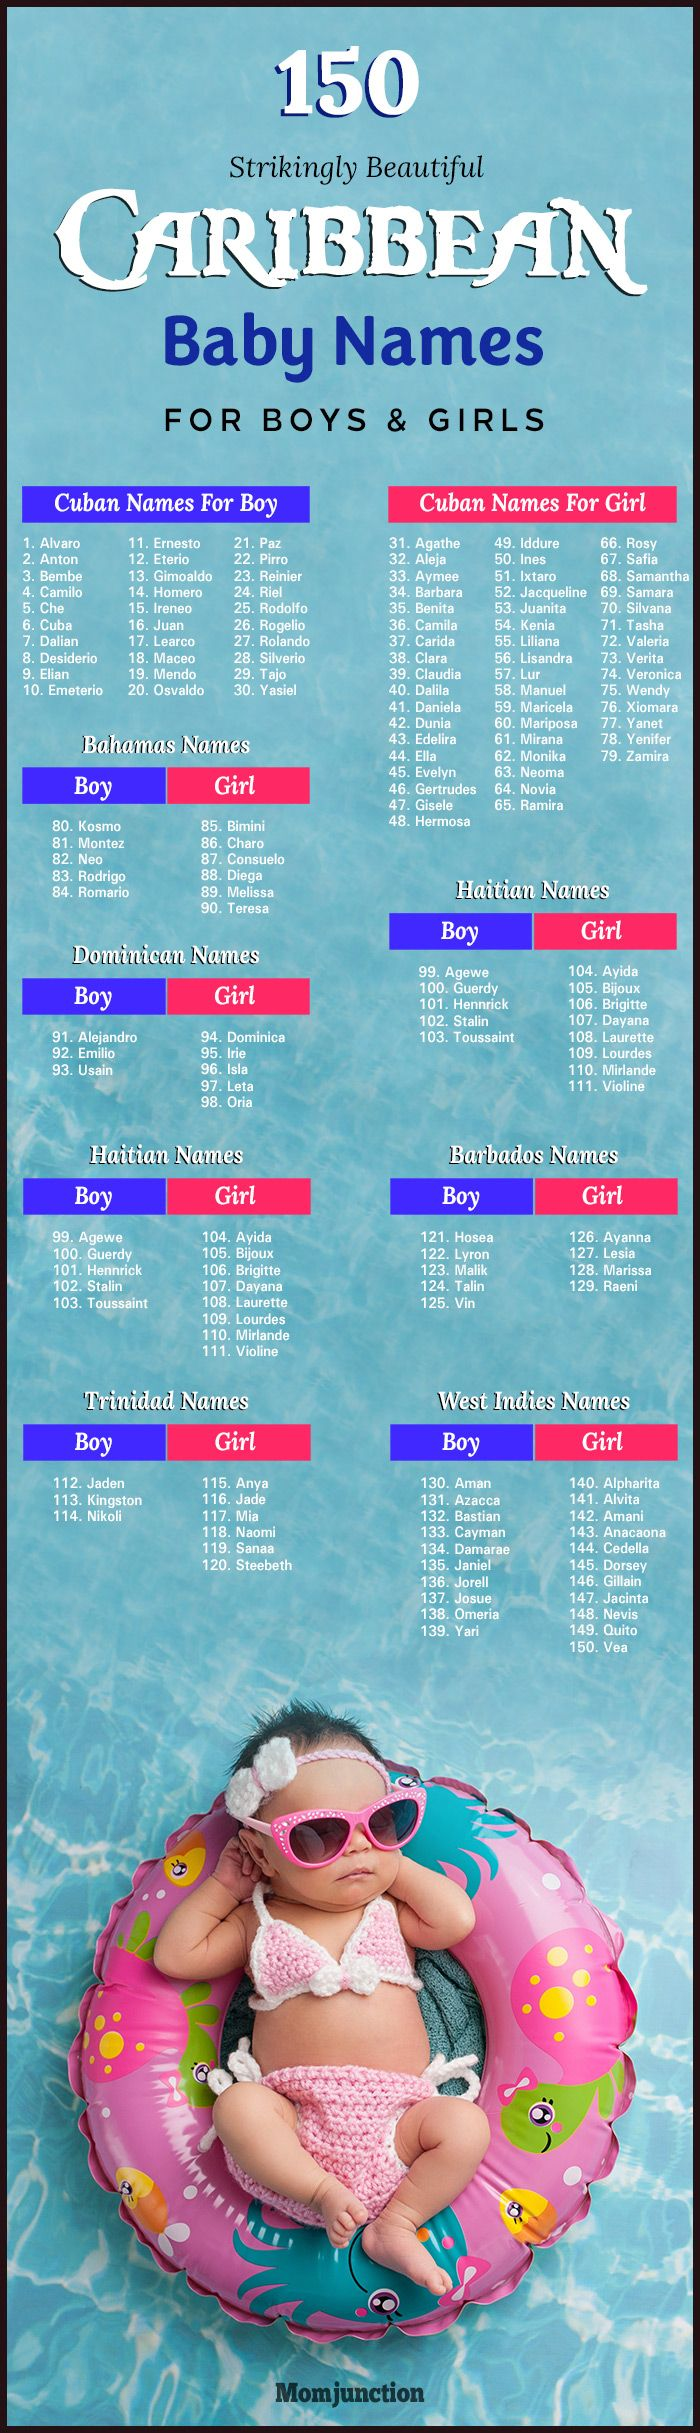 150 Strikingly Beautiful Caribbean Baby Names For Boys And Girls